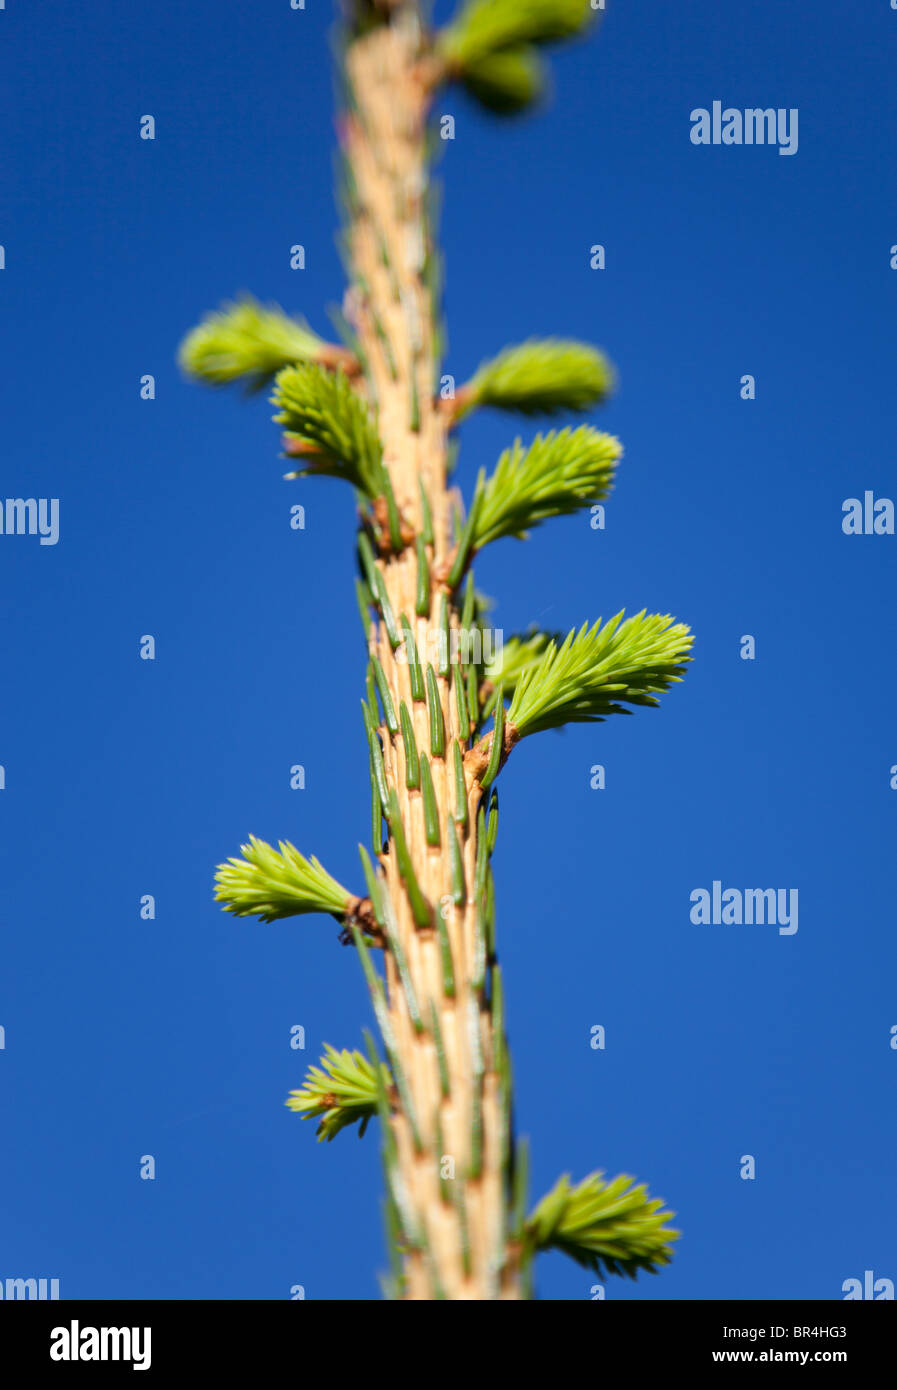 The annual growth and new branches budding on spruce tree ( picea abies ) - Stock Image